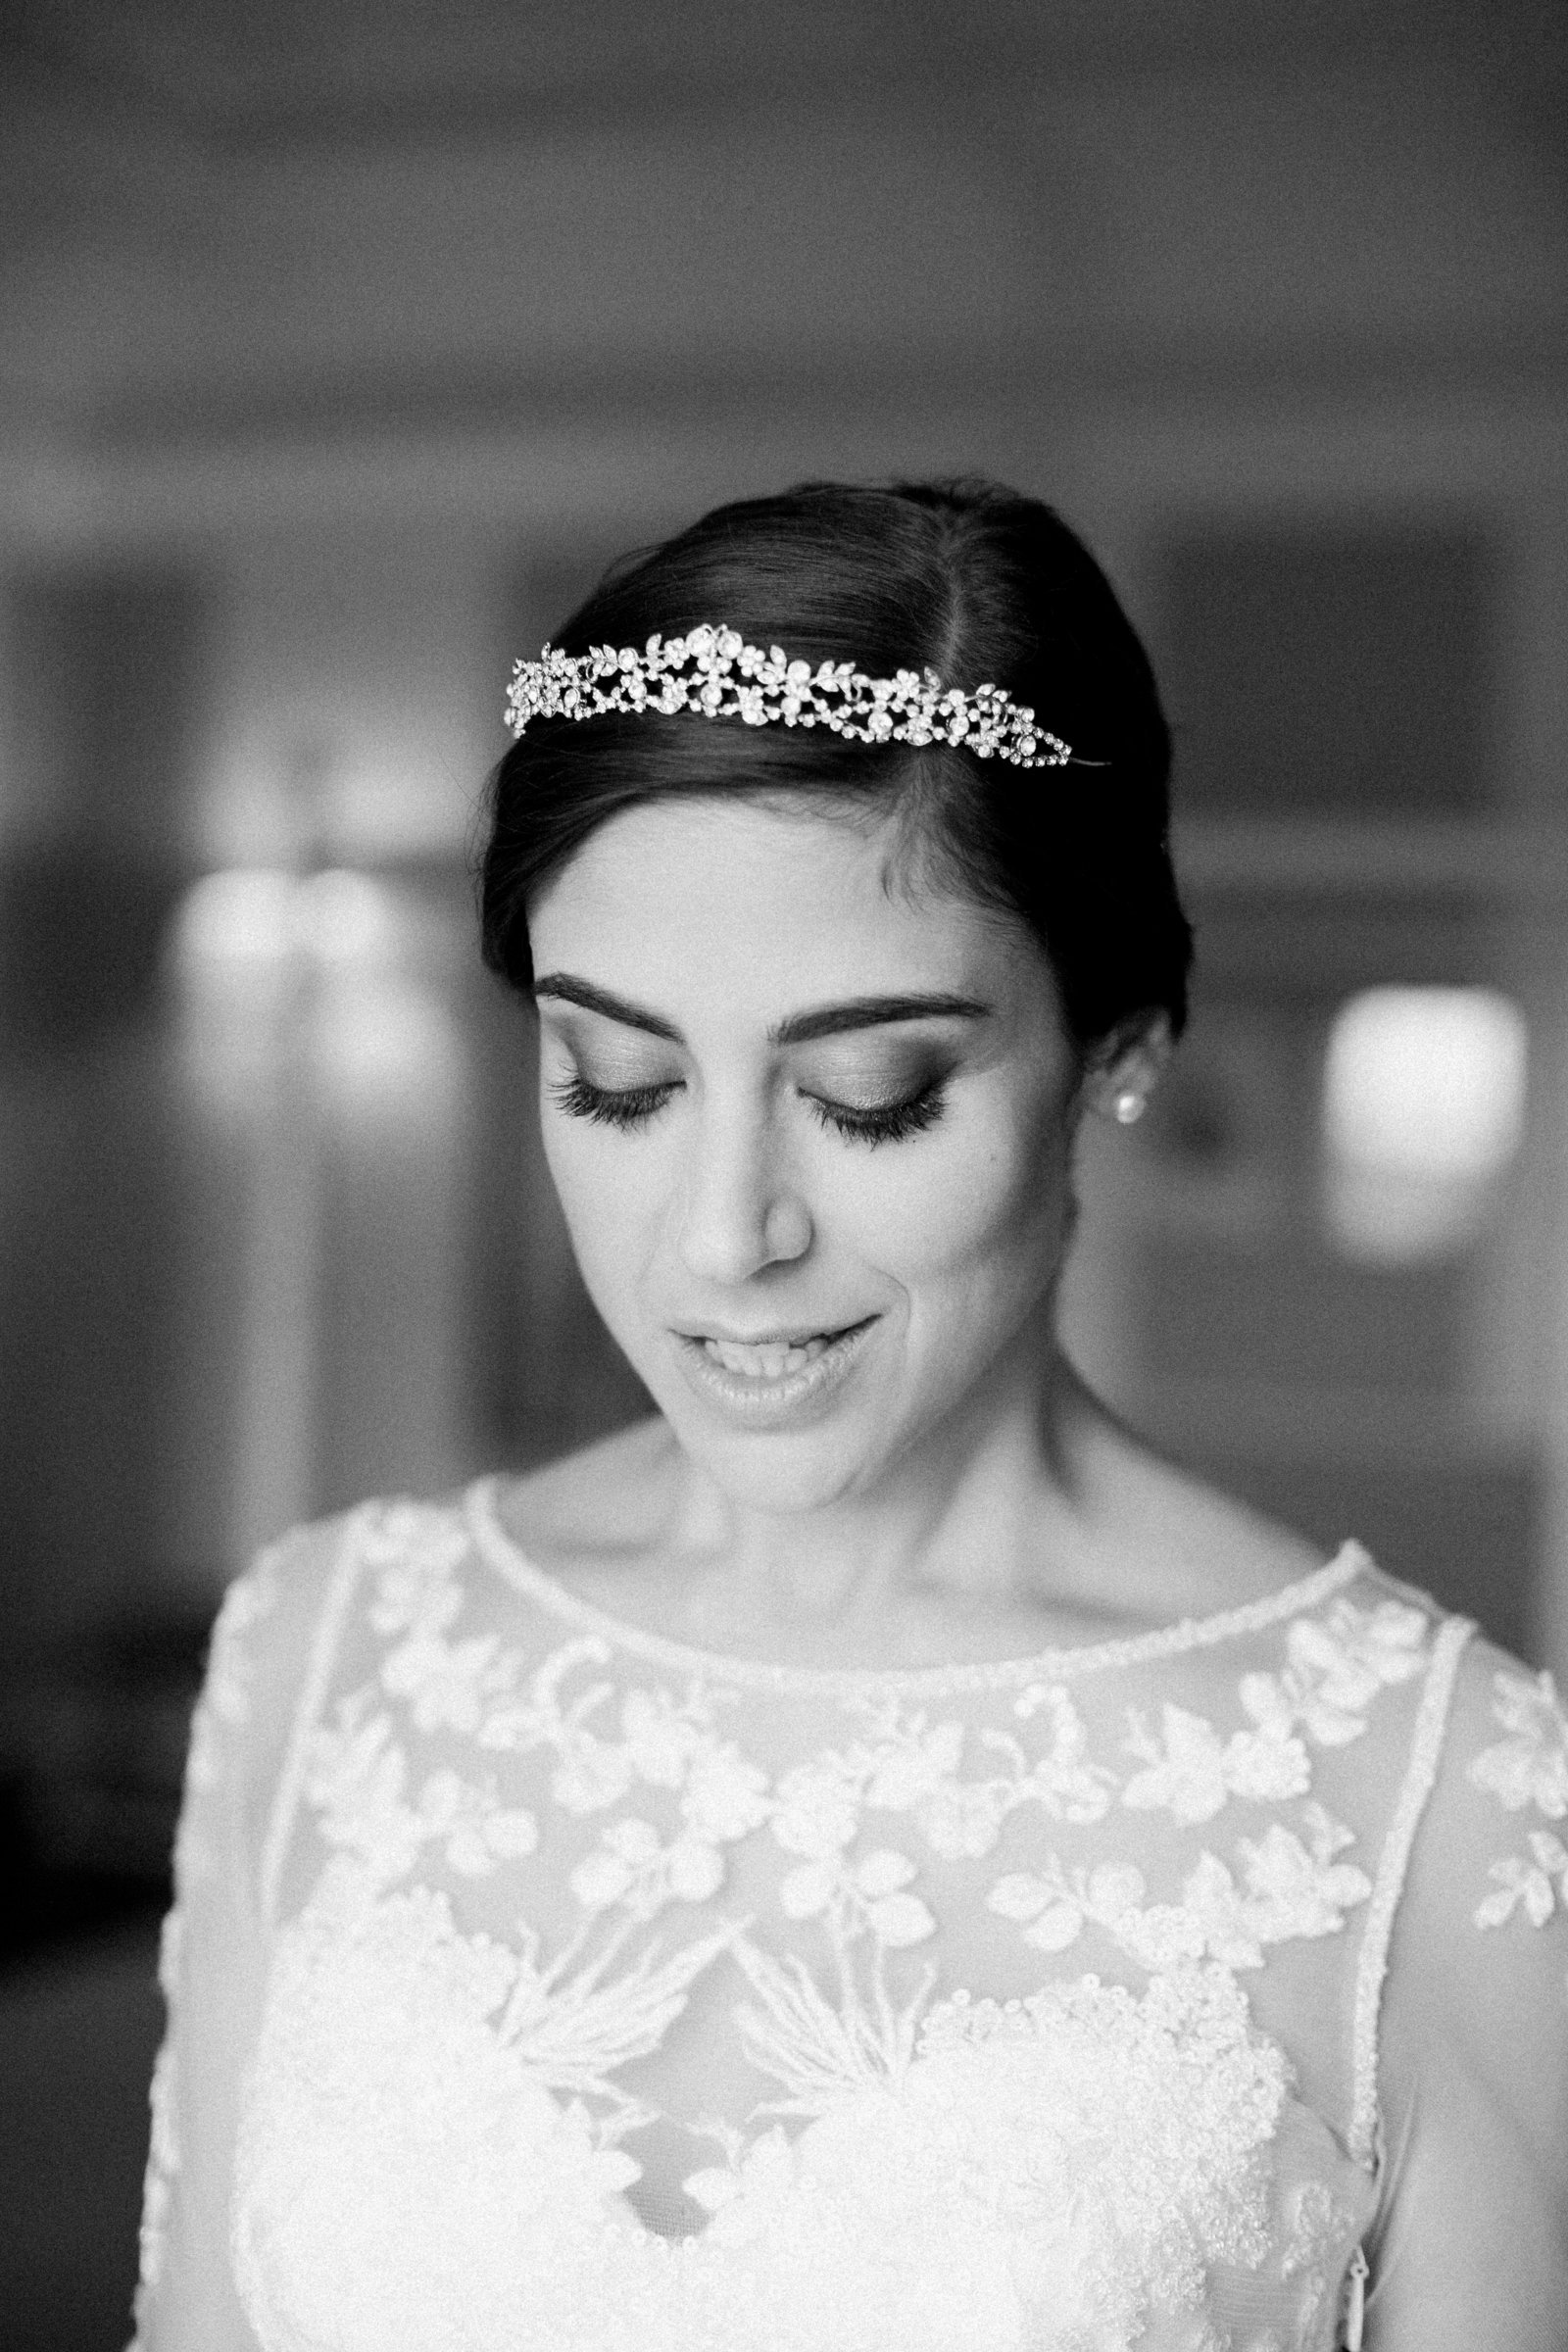 maria+rao+lousa+wedding-121 web.jpg